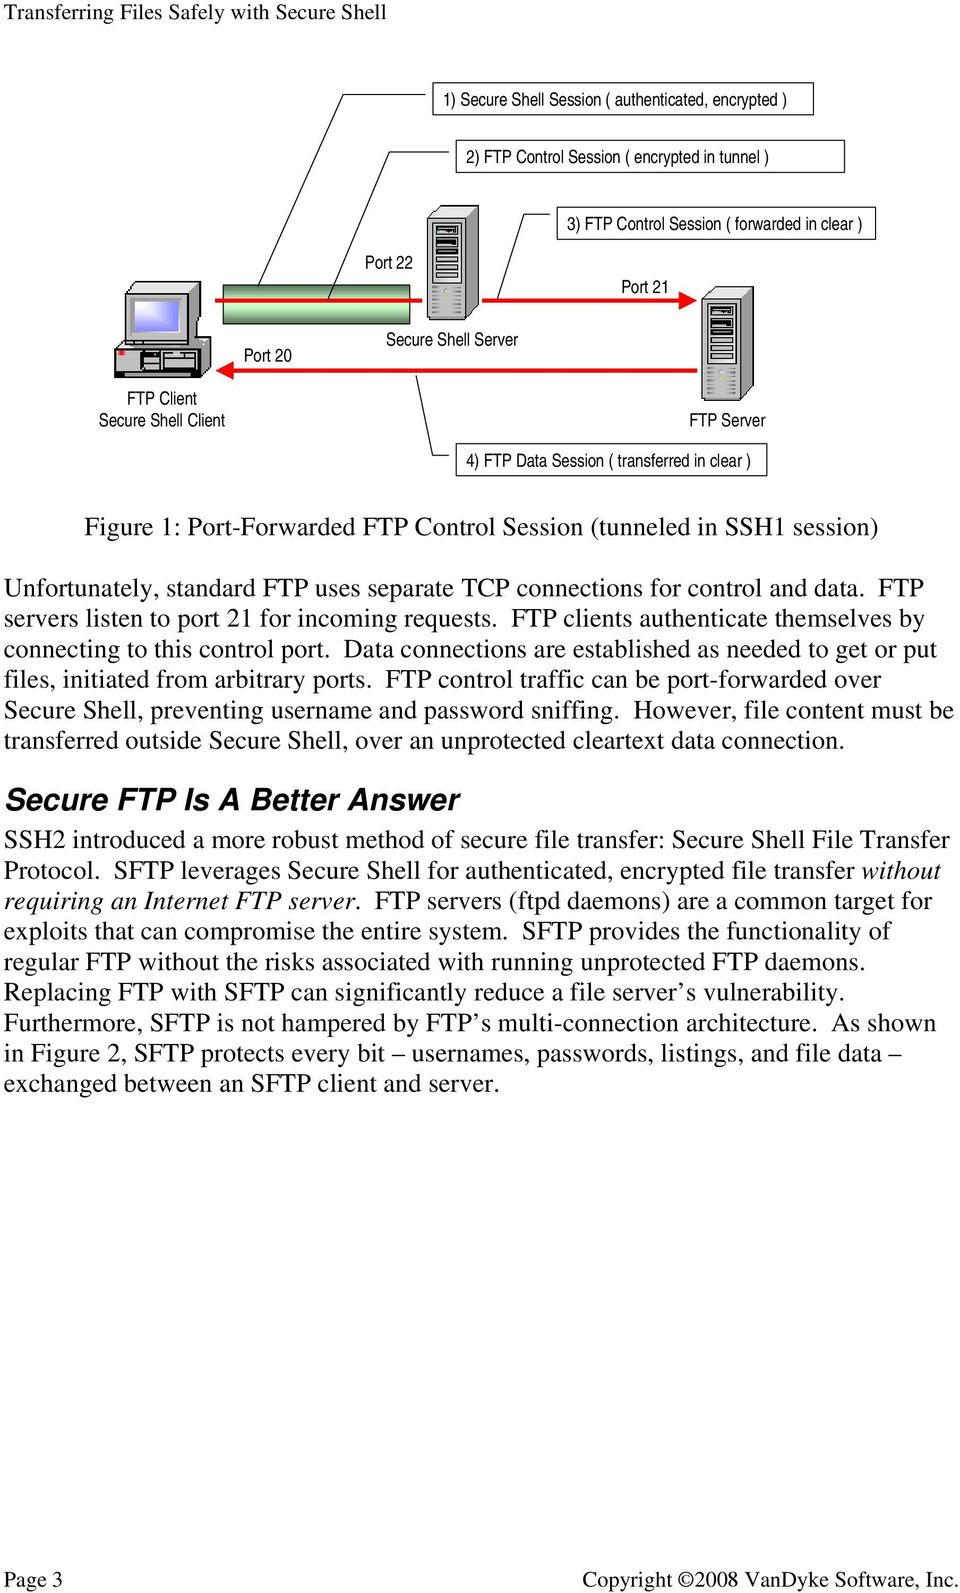 TCP connections for control and data. FTP servers listen to port 21 for incoming requests. FTP clients authenticate themselves by connecting to this control port.